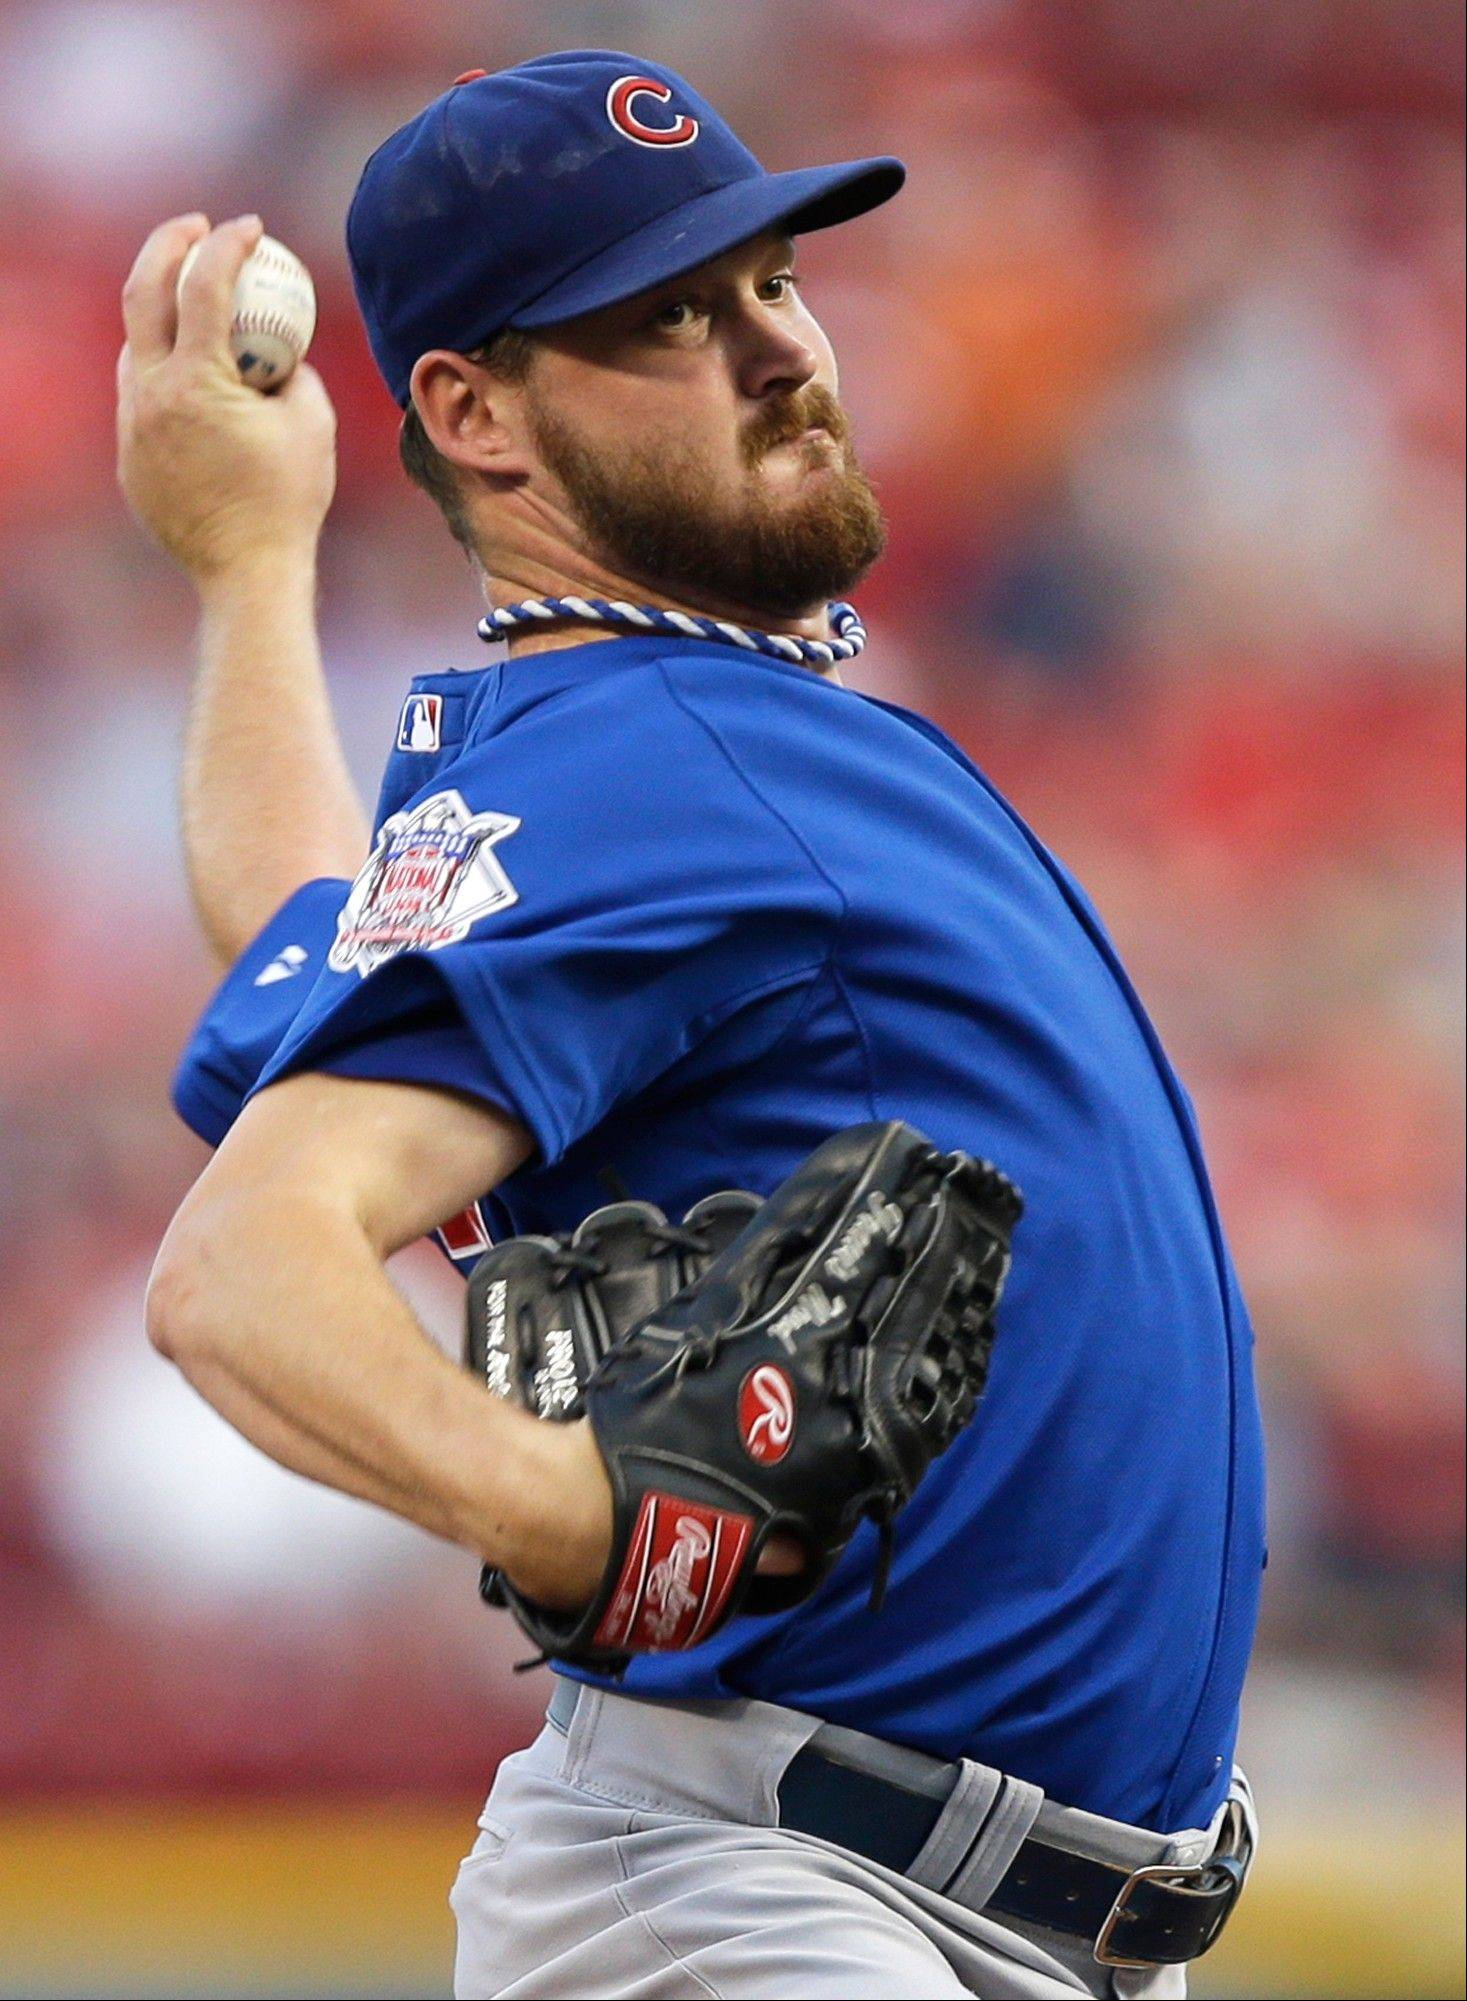 Cubs starting pitcher Travis Wood throws against the Reds, his former team, in the first inning Monday in Cincinnati.